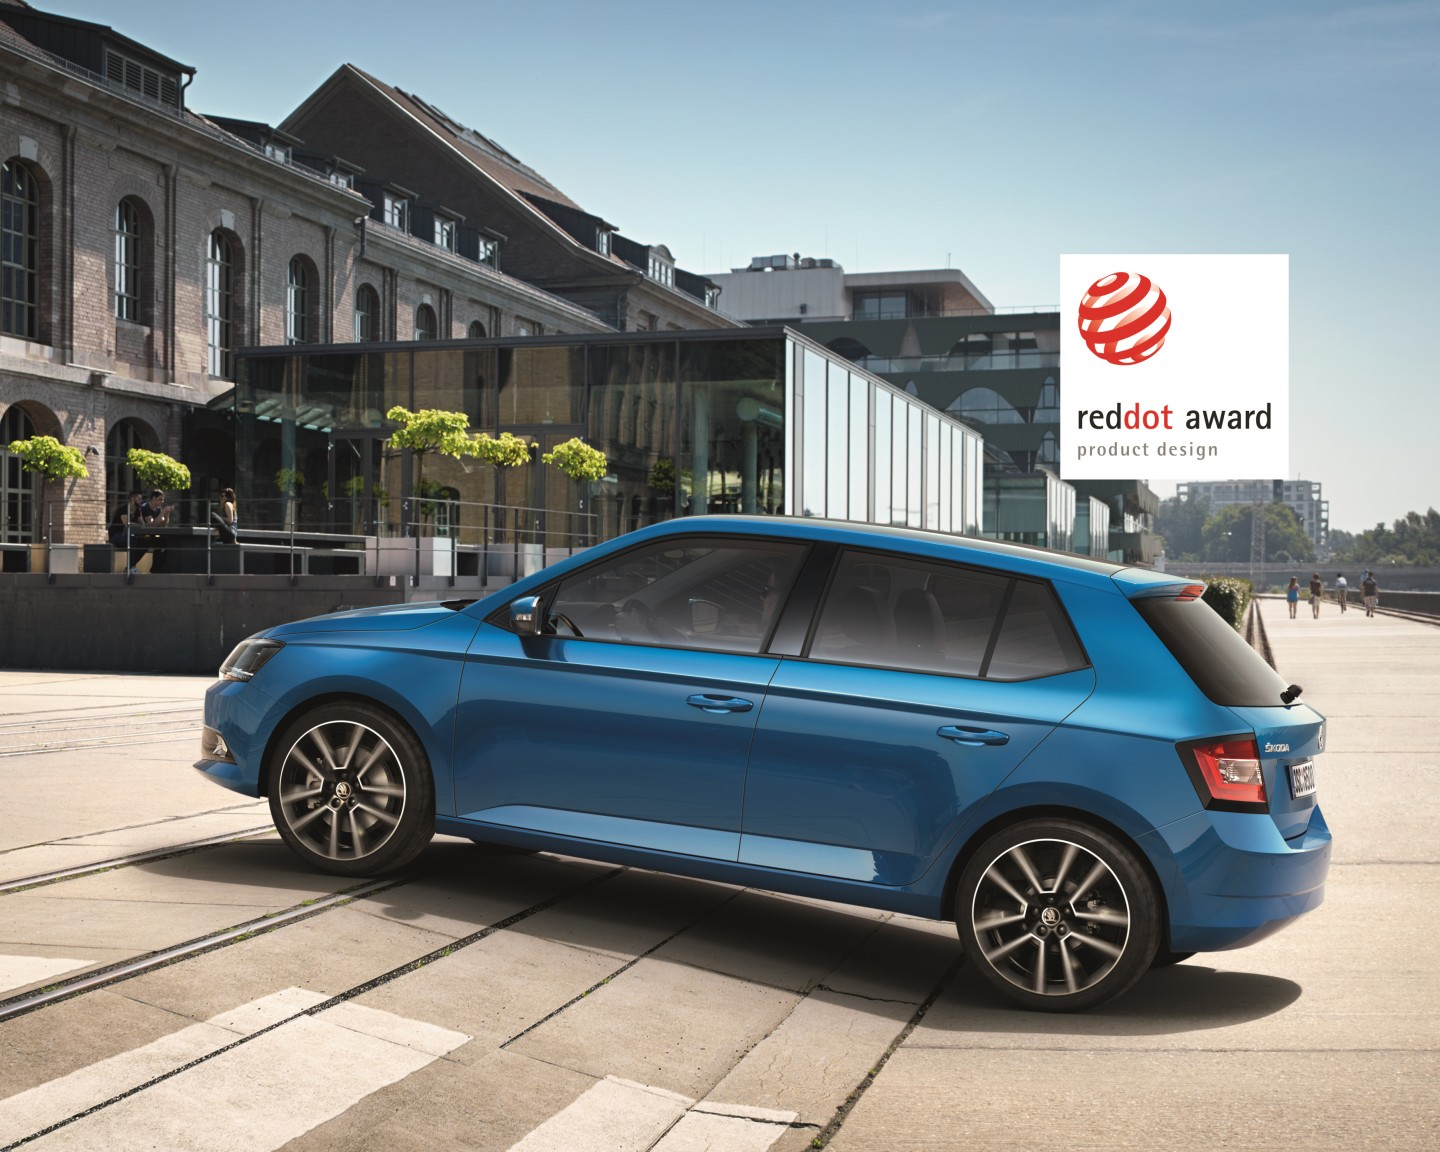 ŠKODA Fabia: The all-new small car has received the converted 'Red Dot Award' for its outstanding product design. (Photo: ŠKODA AUTO a.s.)